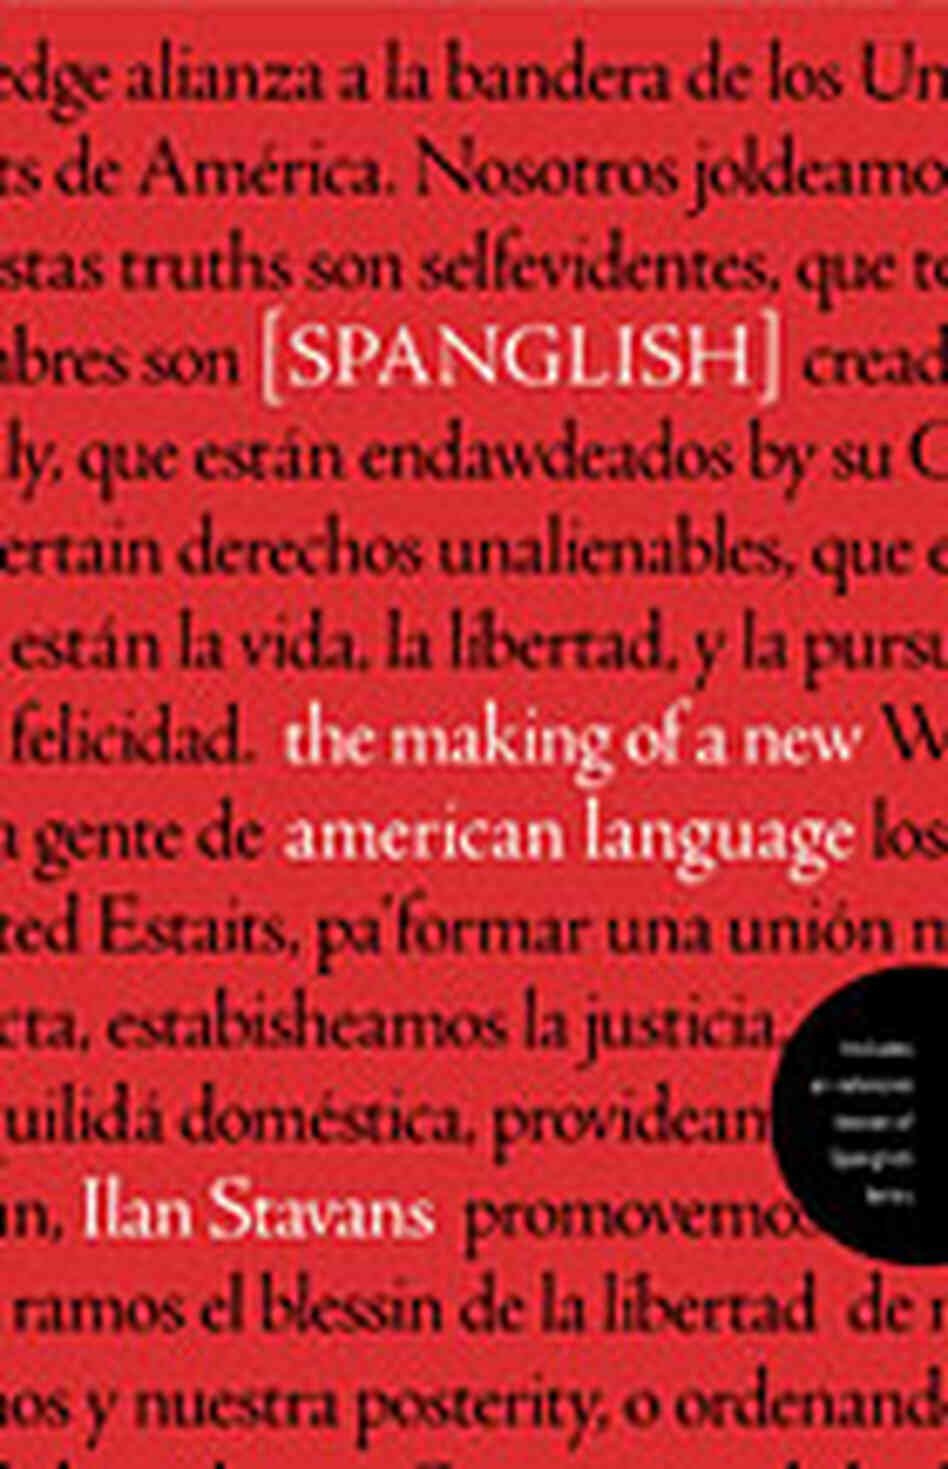 'Spanish: The Making of a New American Language'